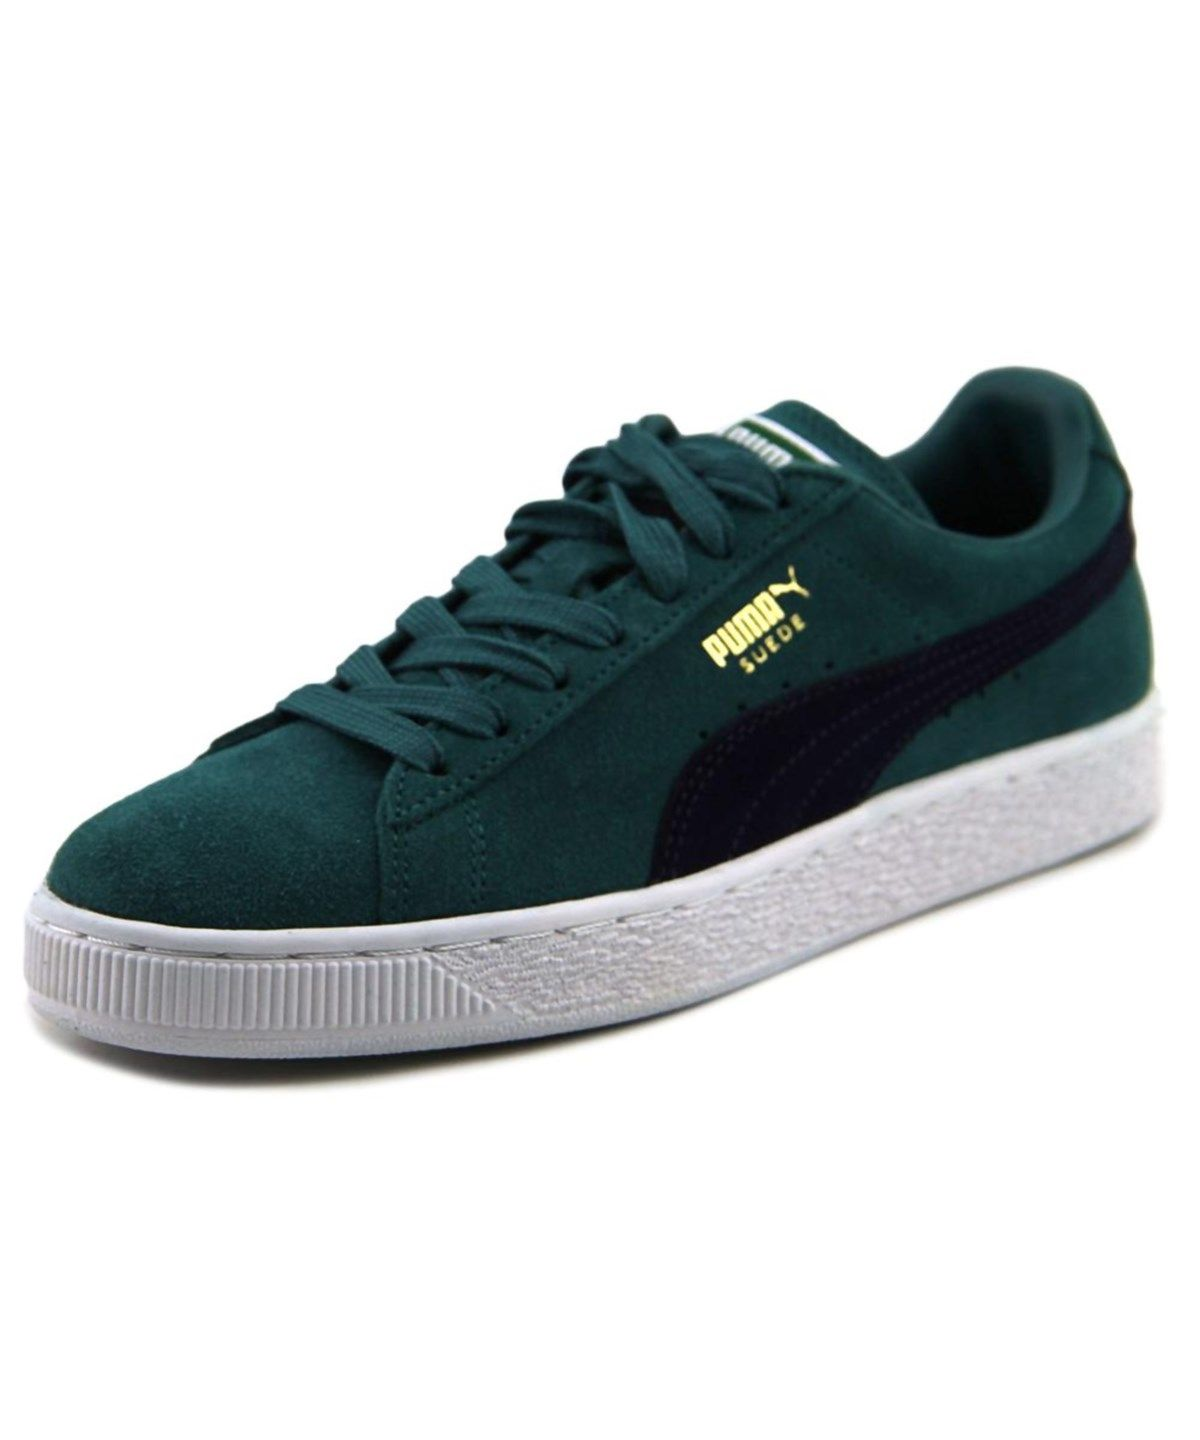 39182f6cfb9 PUMA Puma Suede Classic Men Round Toe Suede Green Sneakers .  puma  shoes   sneakers